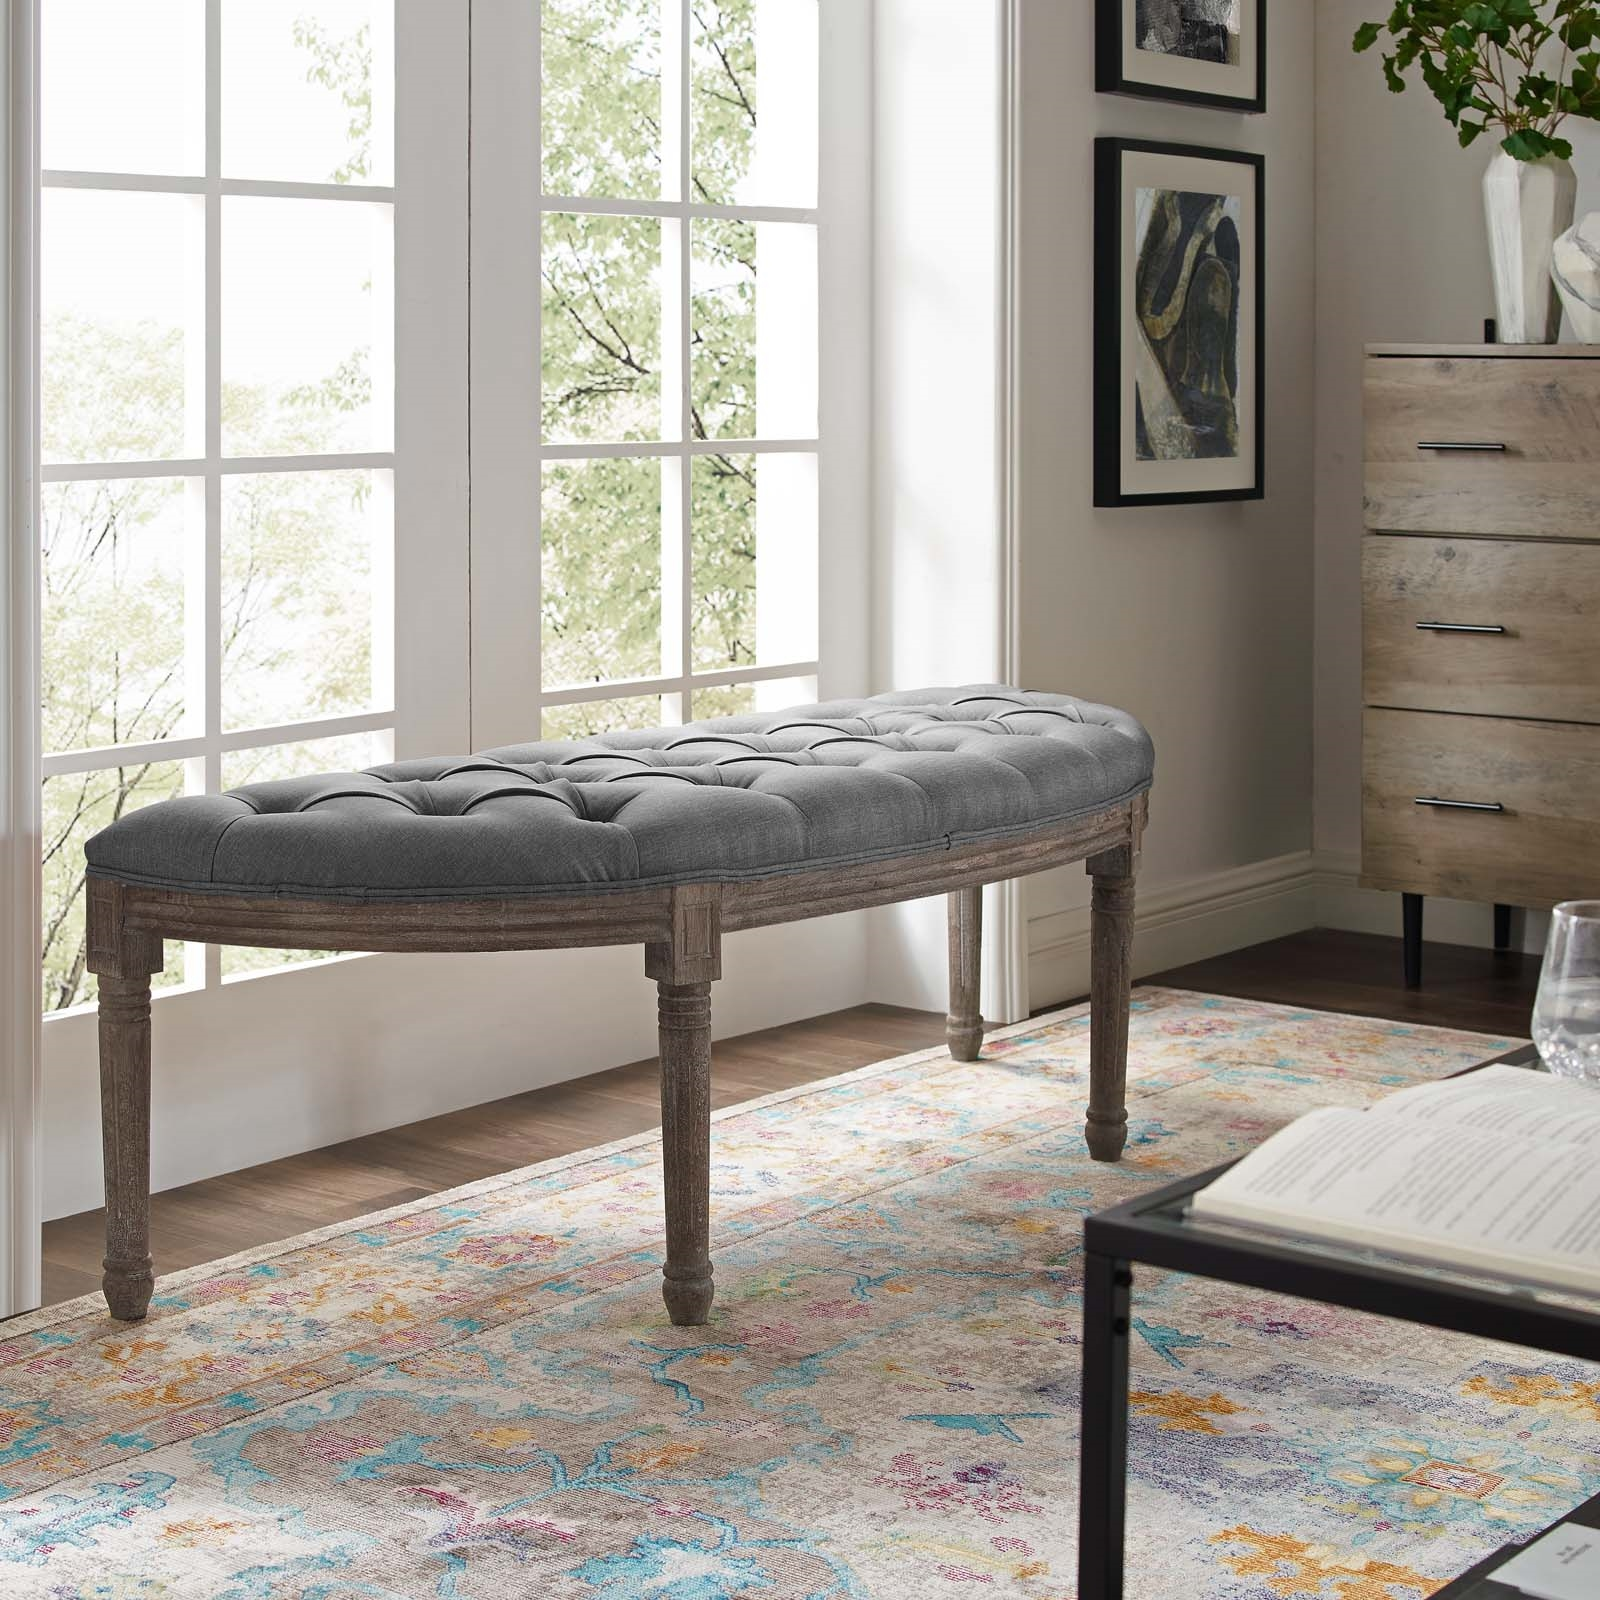 Esteem Vintage French Upholstered Fabric Semi-Circle Bench in Light Gray